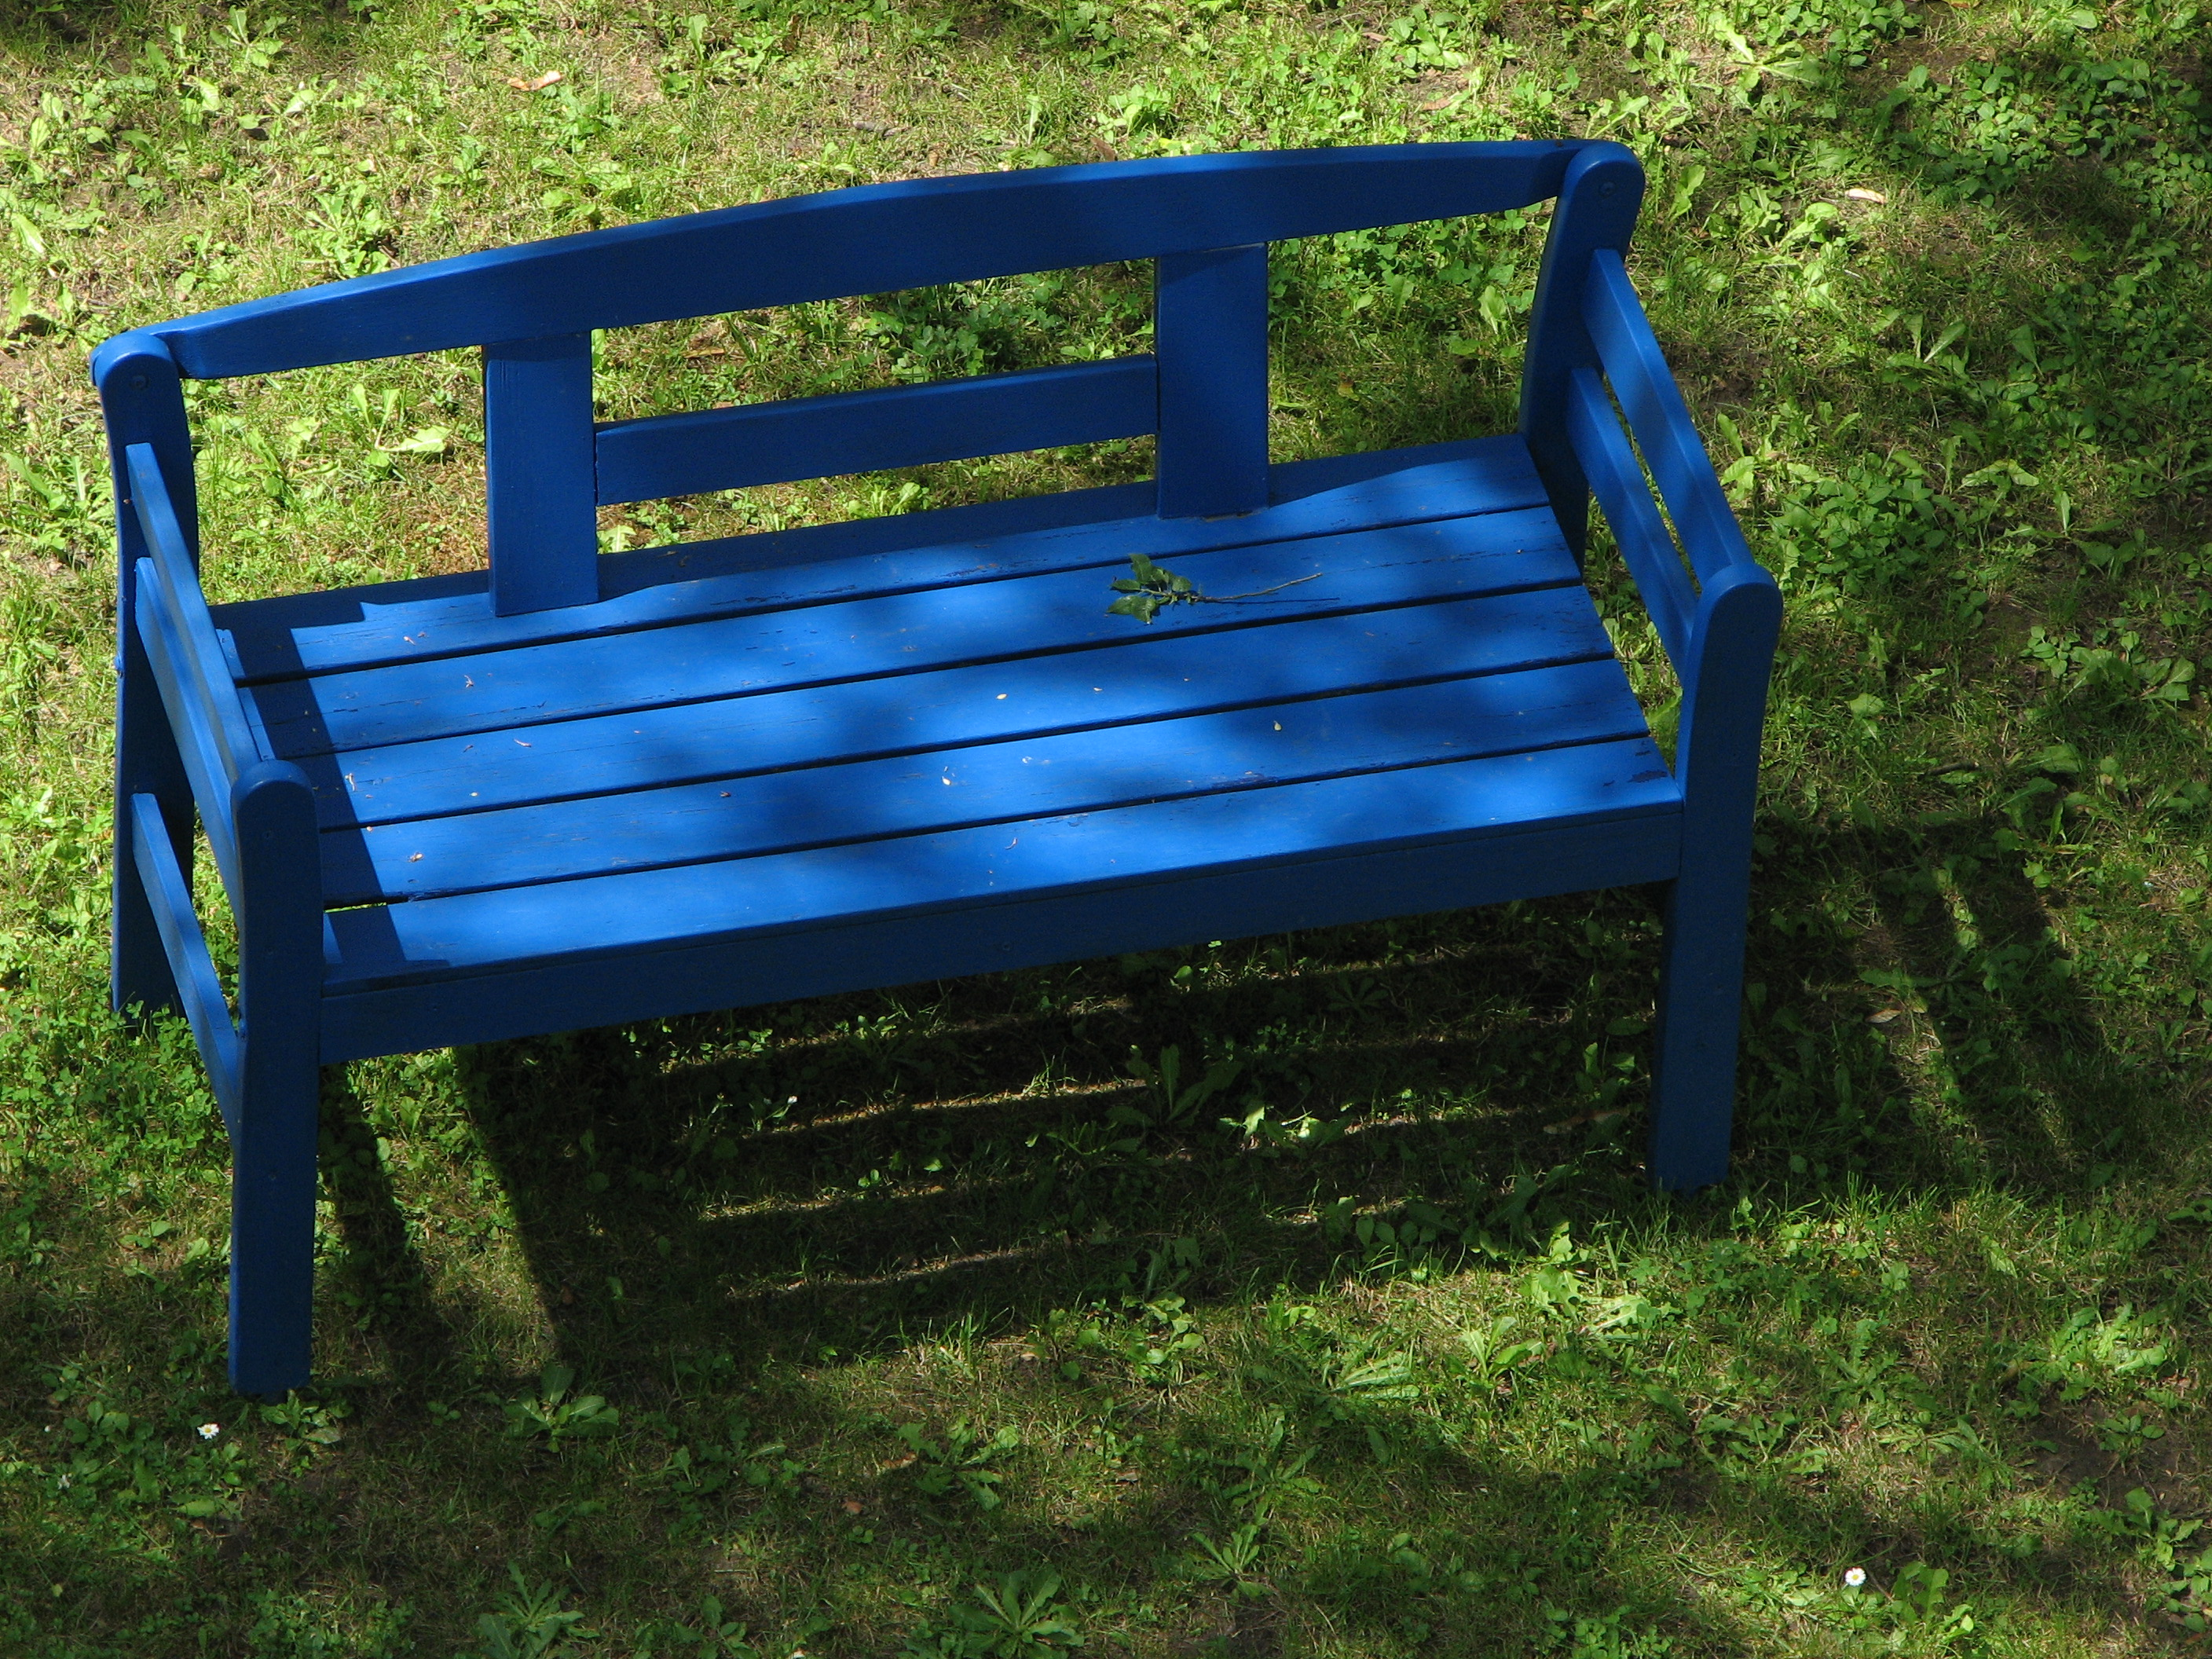 Groovy File Blue Wooden Bench Wikimedia Commons Unemploymentrelief Wooden Chair Designs For Living Room Unemploymentrelieforg